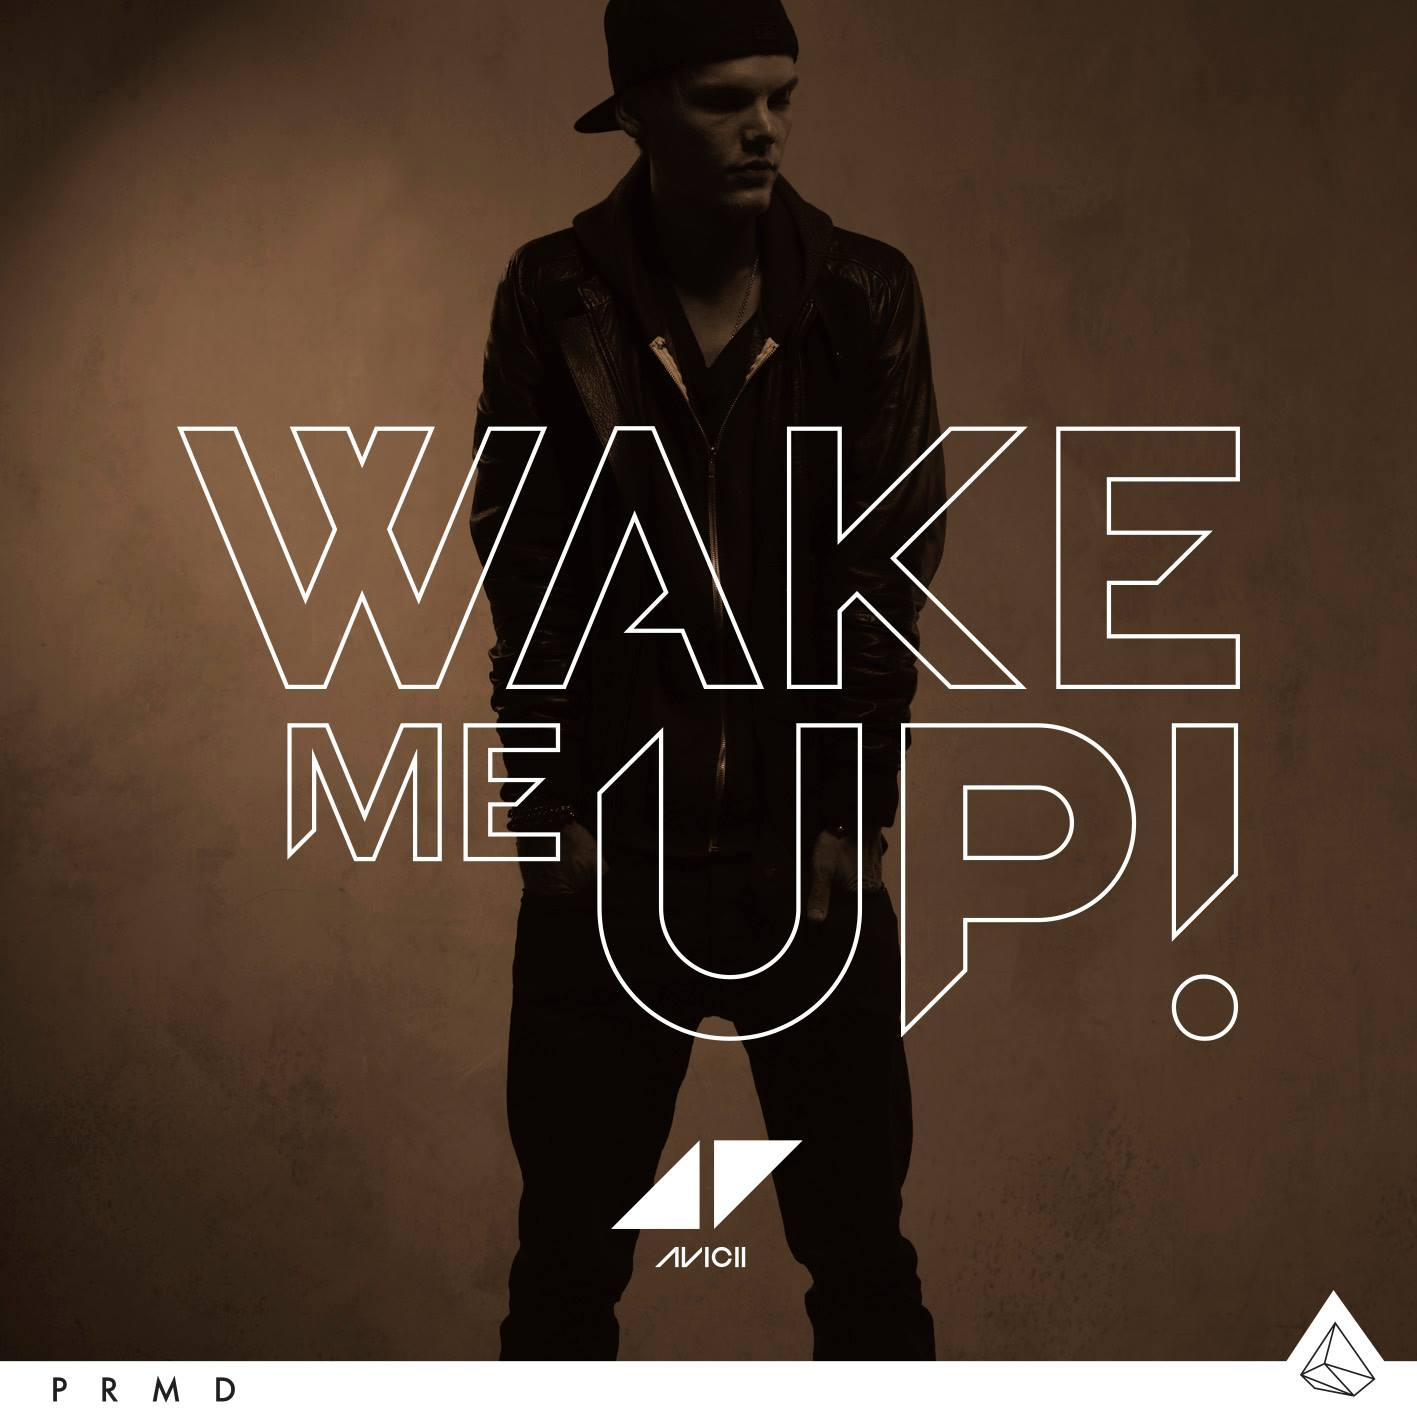 Avicii: 'Wake Me Up' Official Cover